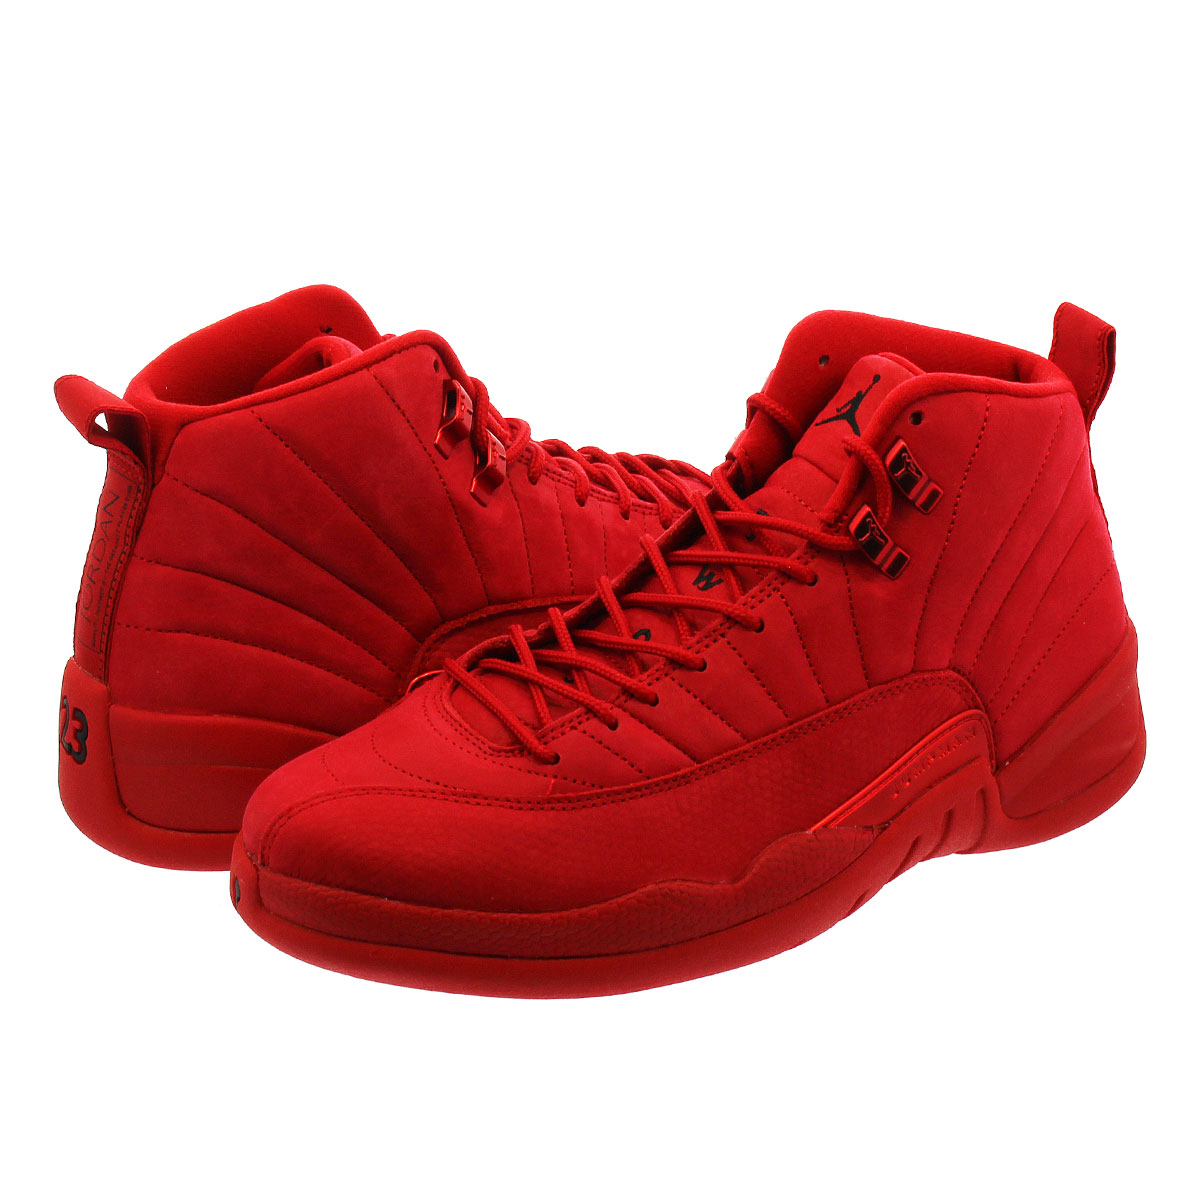 new product 318f3 6e777 SELECT SHOP LOWTEX: NIKE AIR JORDAN 12 RETRO Nike Air Jordan ...